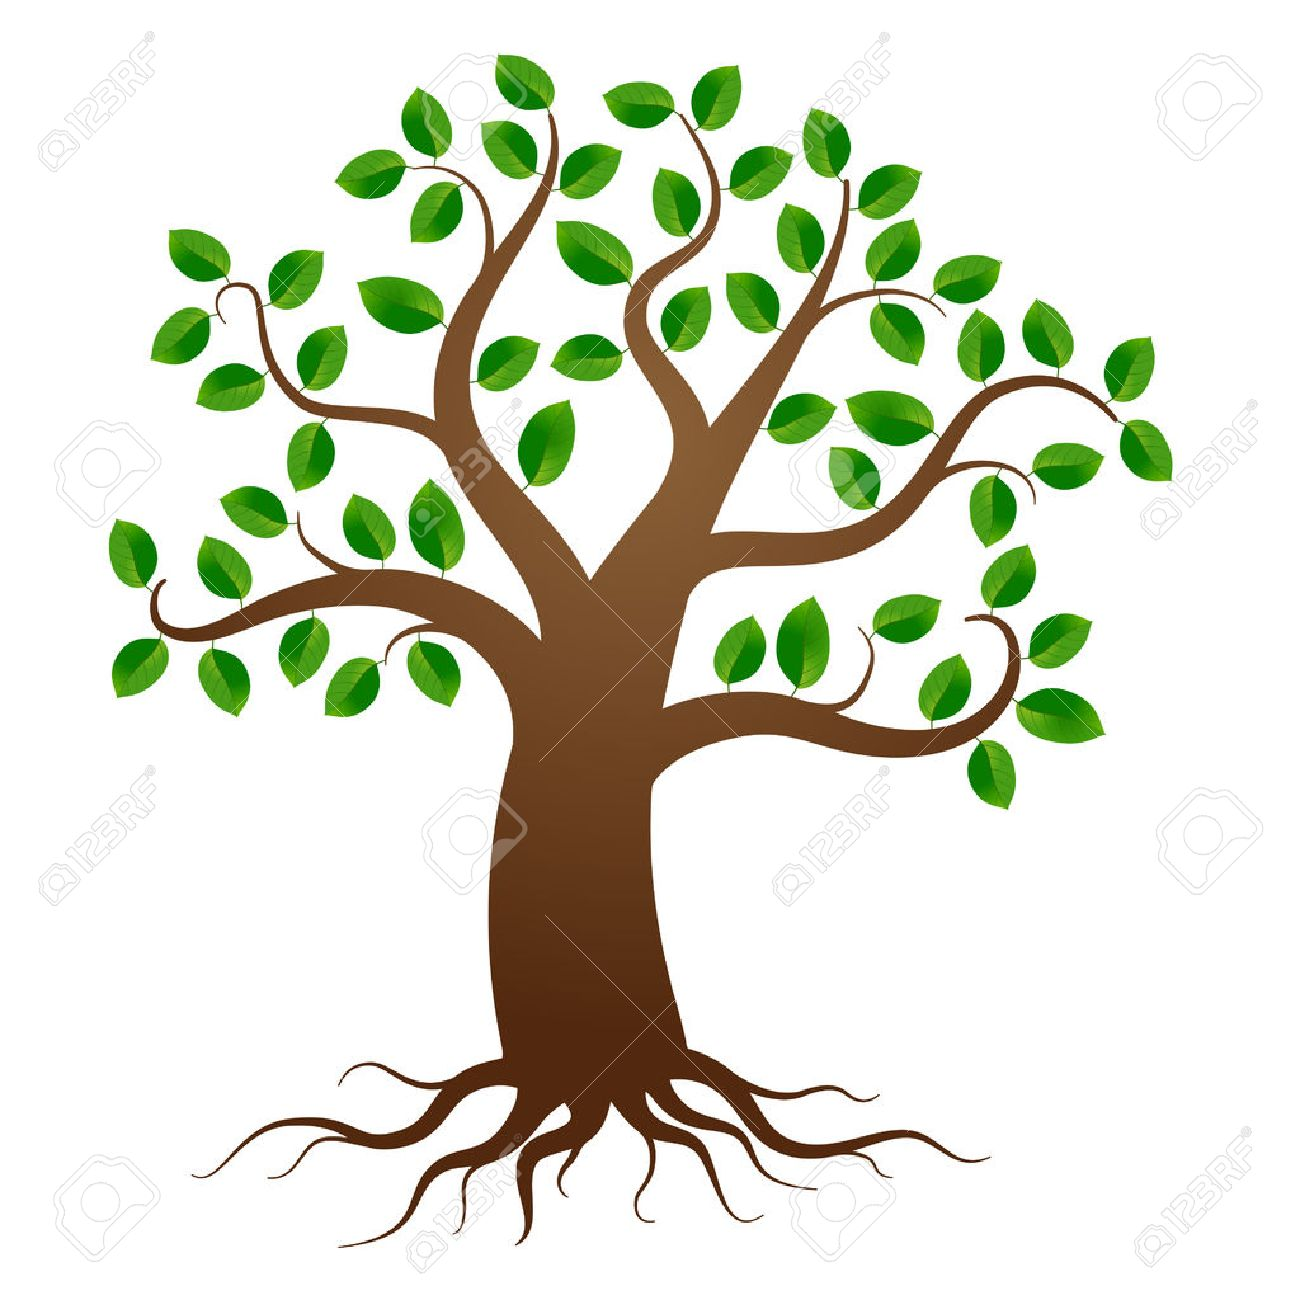 green tree with roots on white background royalty free cliparts rh 123rf com transparent tree with roots clipart tree with roots clipart png